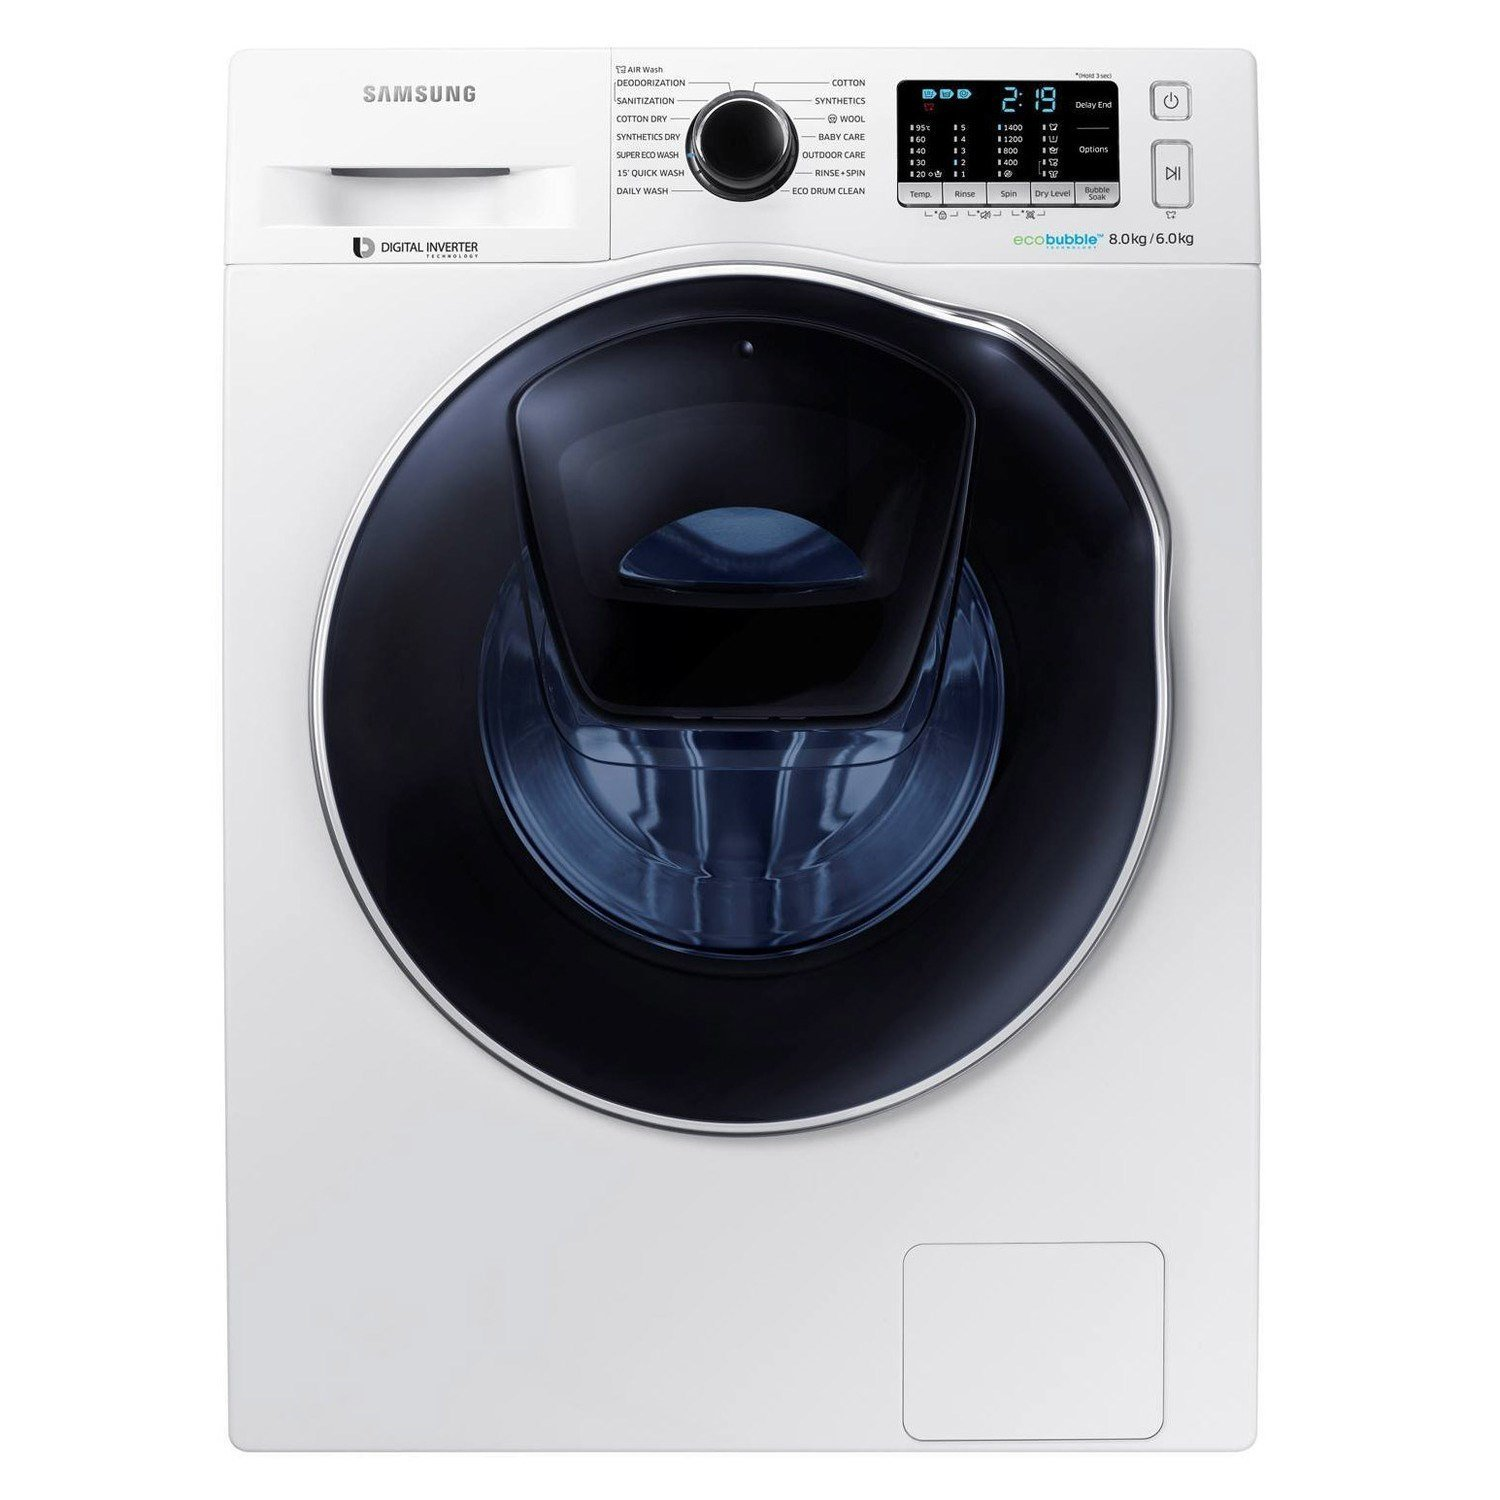 samsung washer dryer 8kg 6kg life in notions. Black Bedroom Furniture Sets. Home Design Ideas